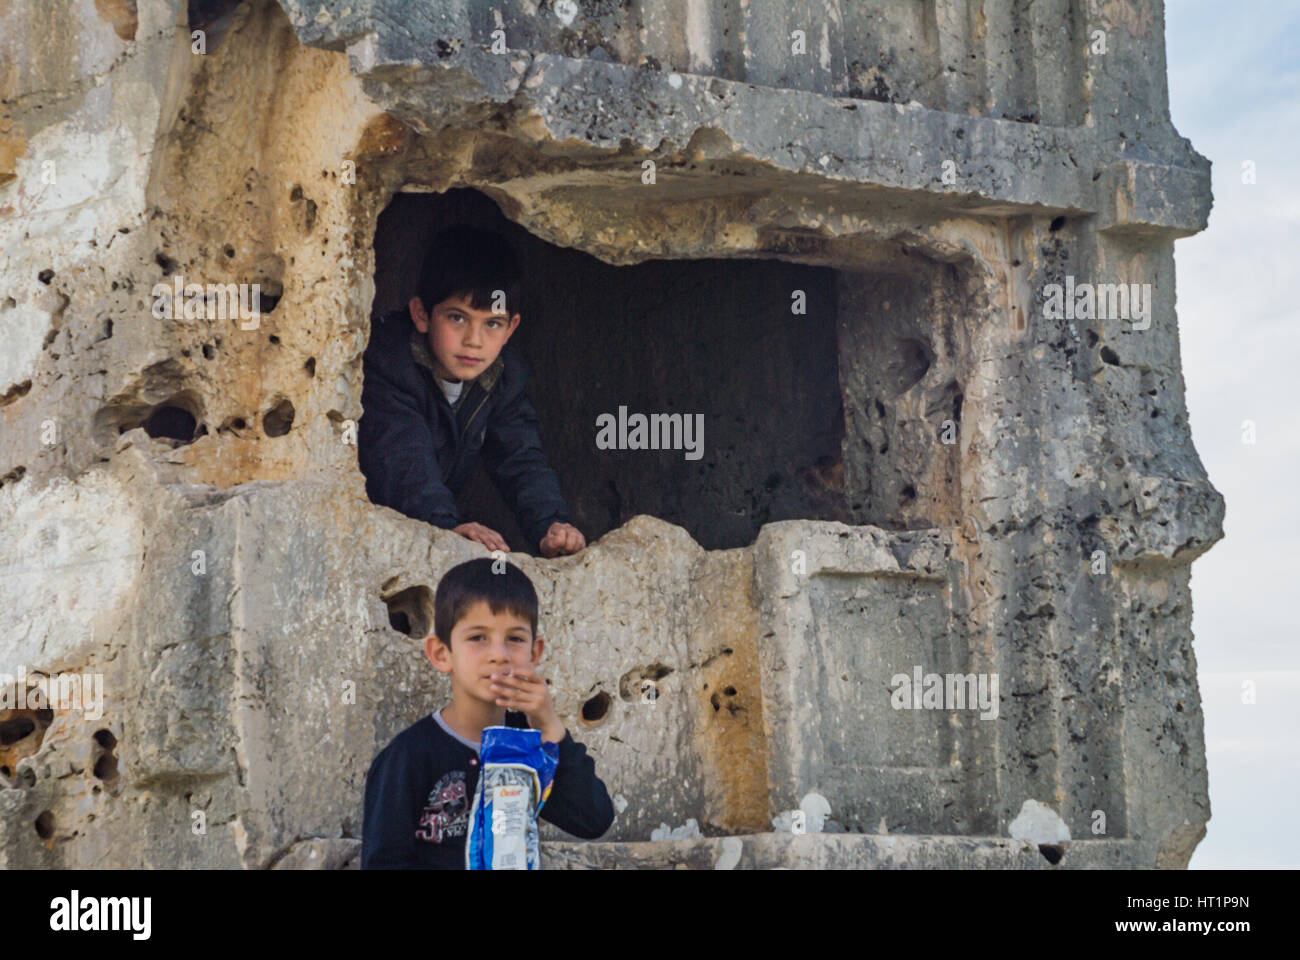 young boys playing game in historical ruins - Stock Image